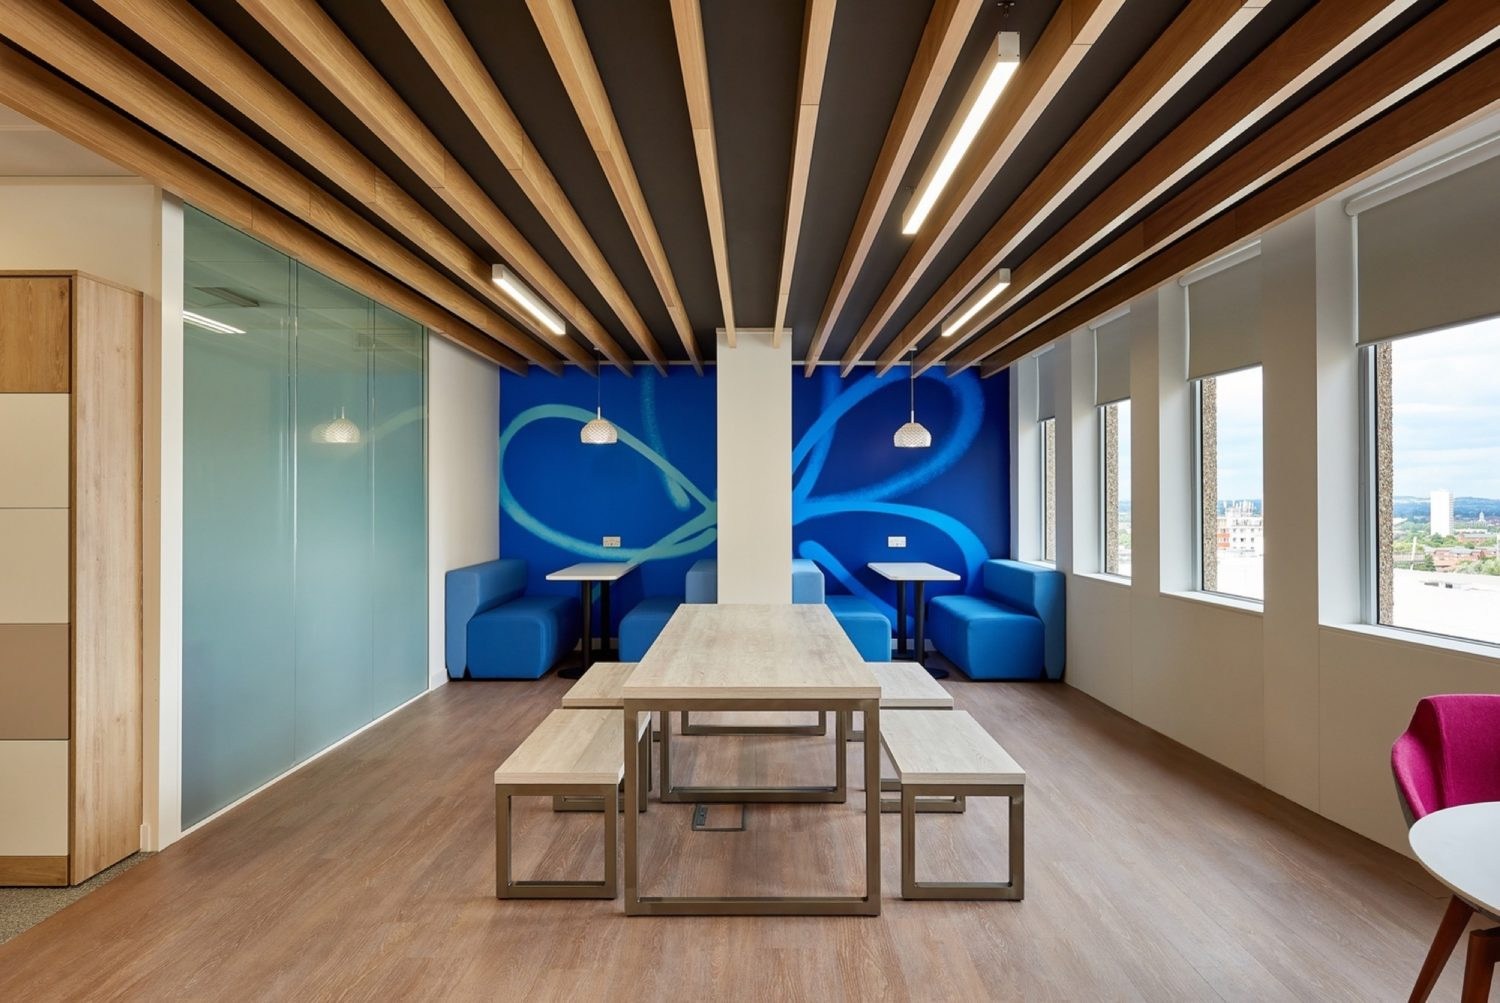 Alzheimers Society office interior design for neurodiversity